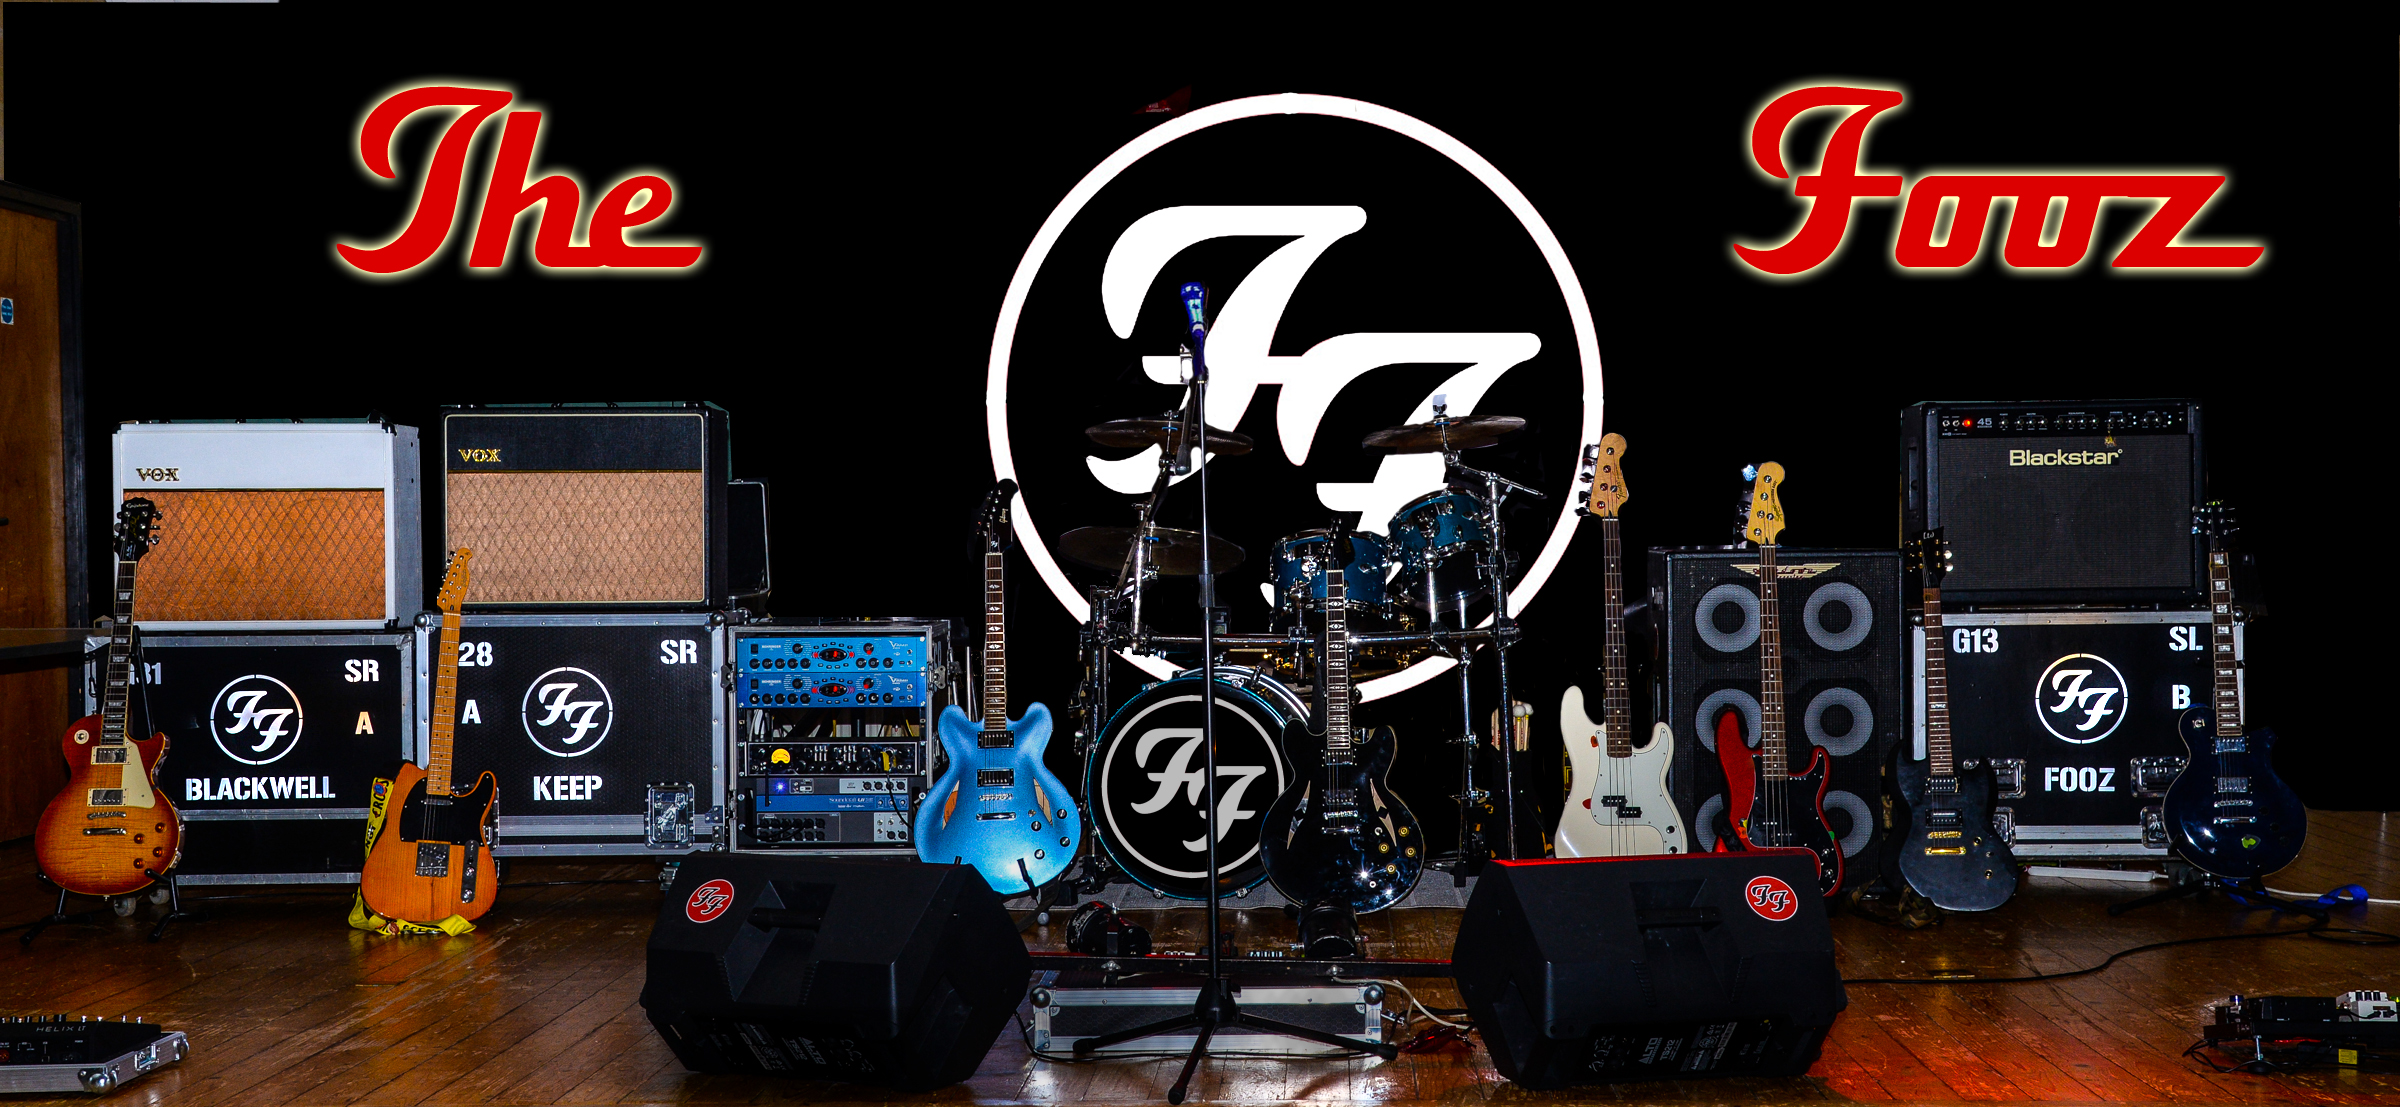 Foo Fighters Tribute - The Fooz